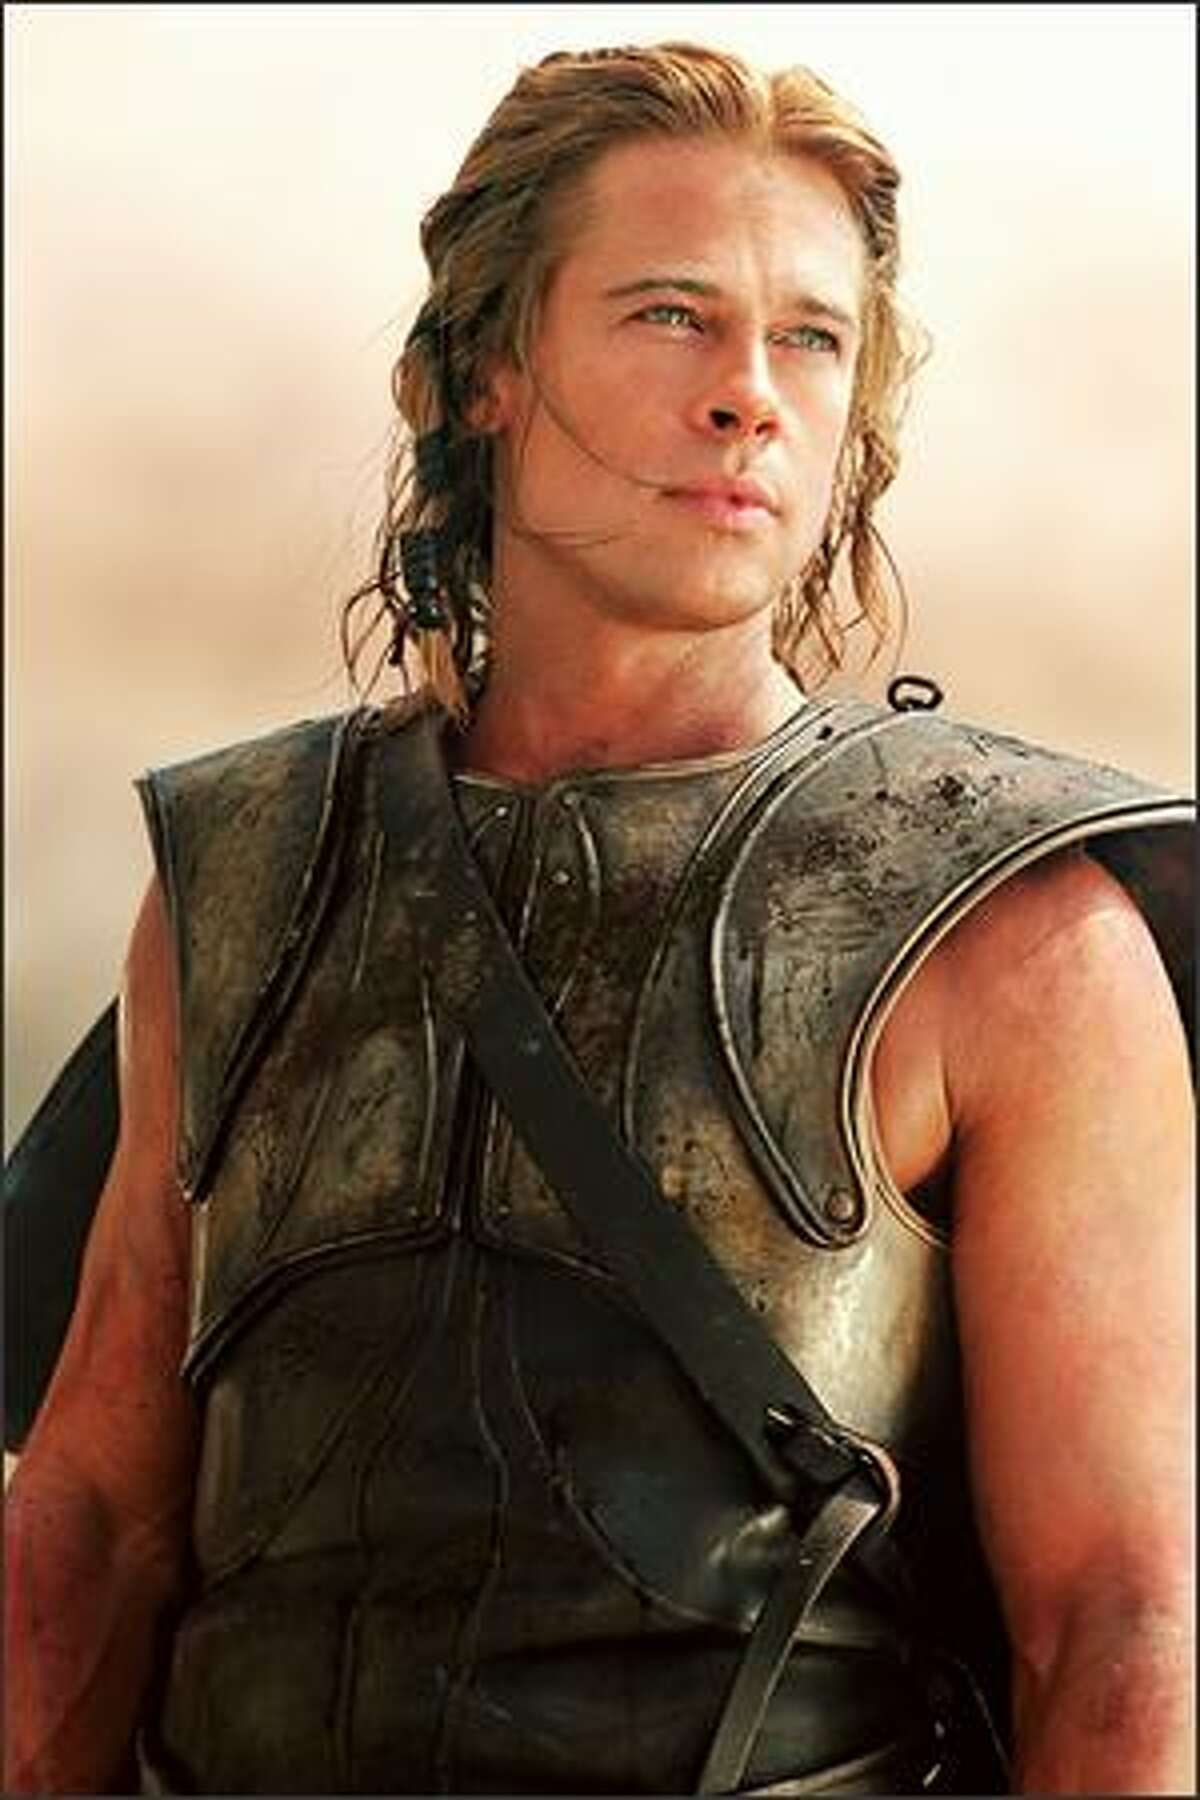 Brad Pitt stars as 'Achilles' in Warner Bros. Pictures' epic action adventure